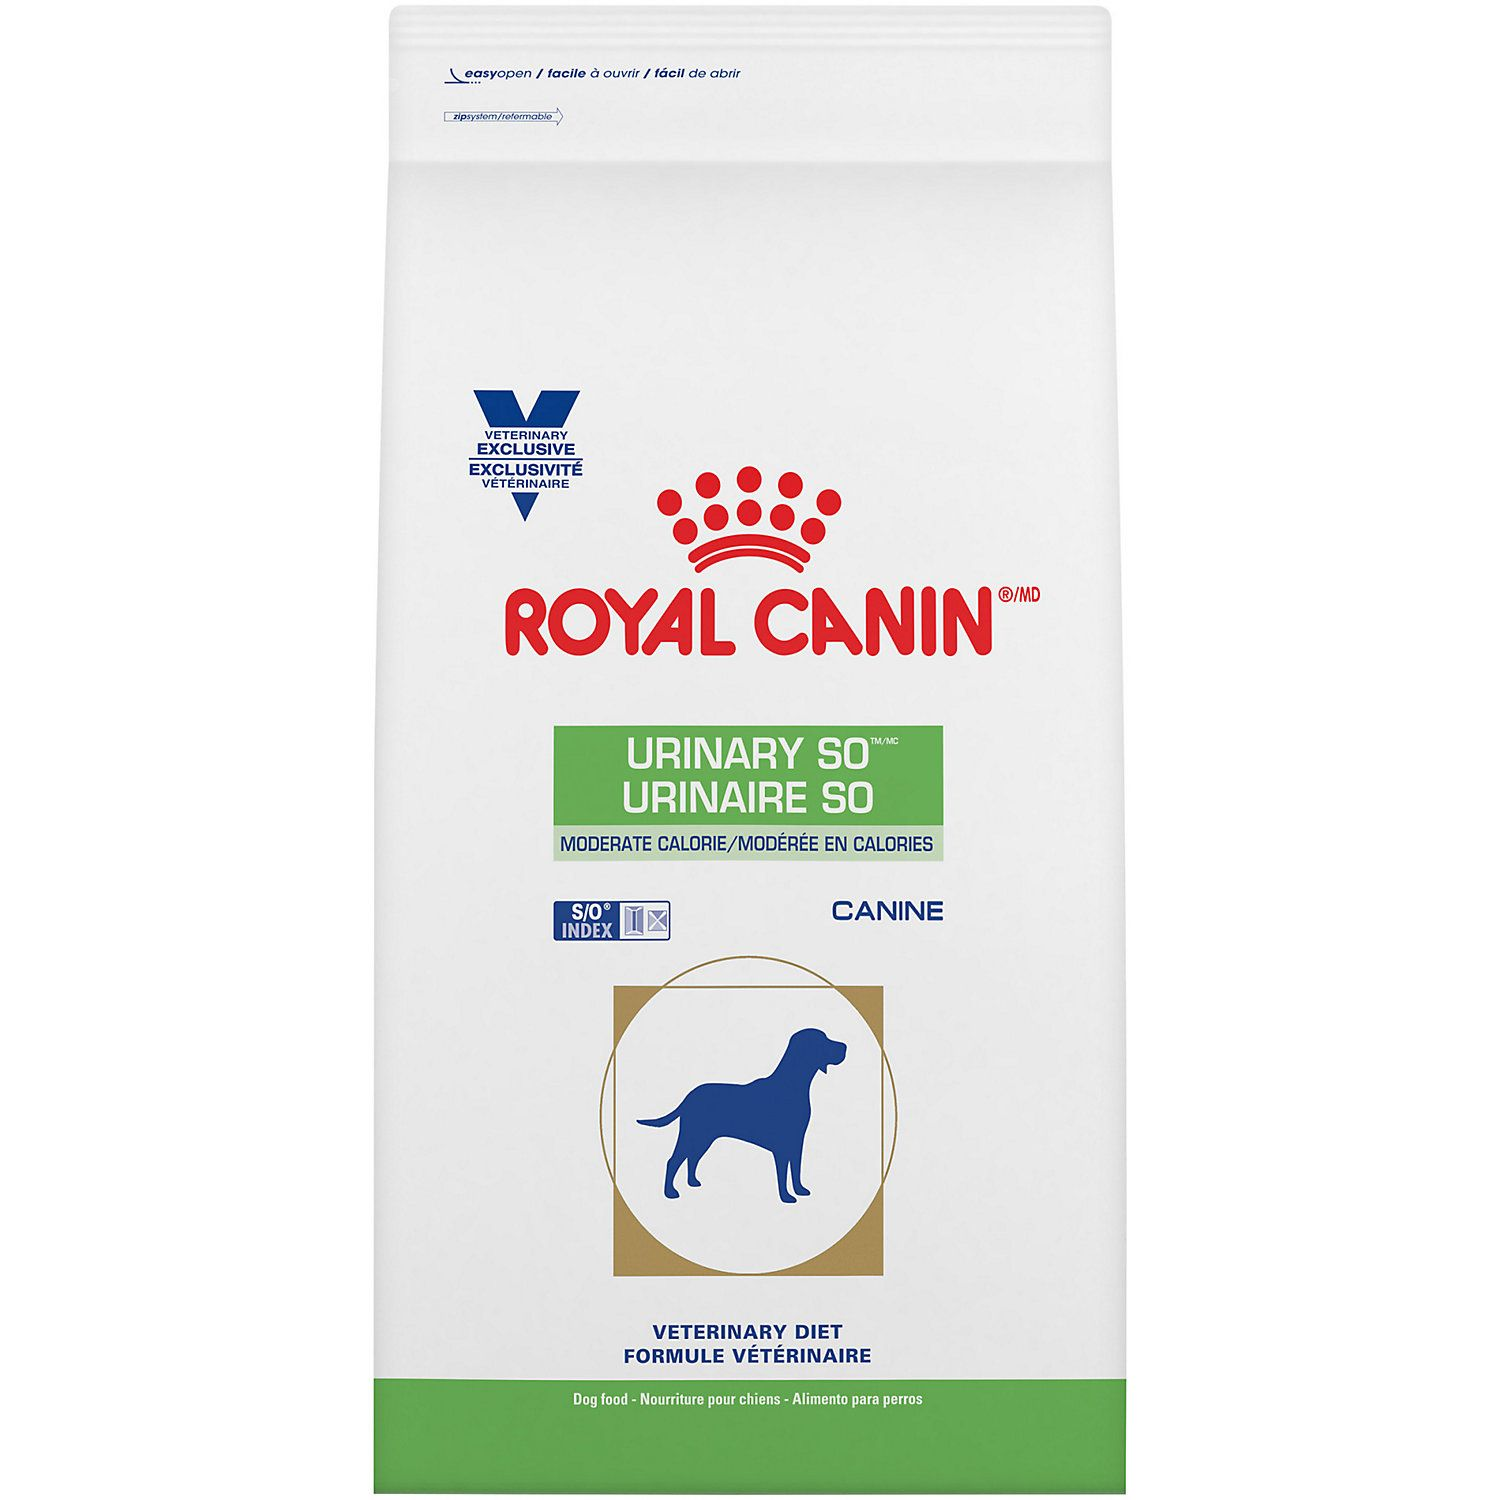 Royal Canin Veterinary Diet Canine Urinary So Moderate Calorie Dry